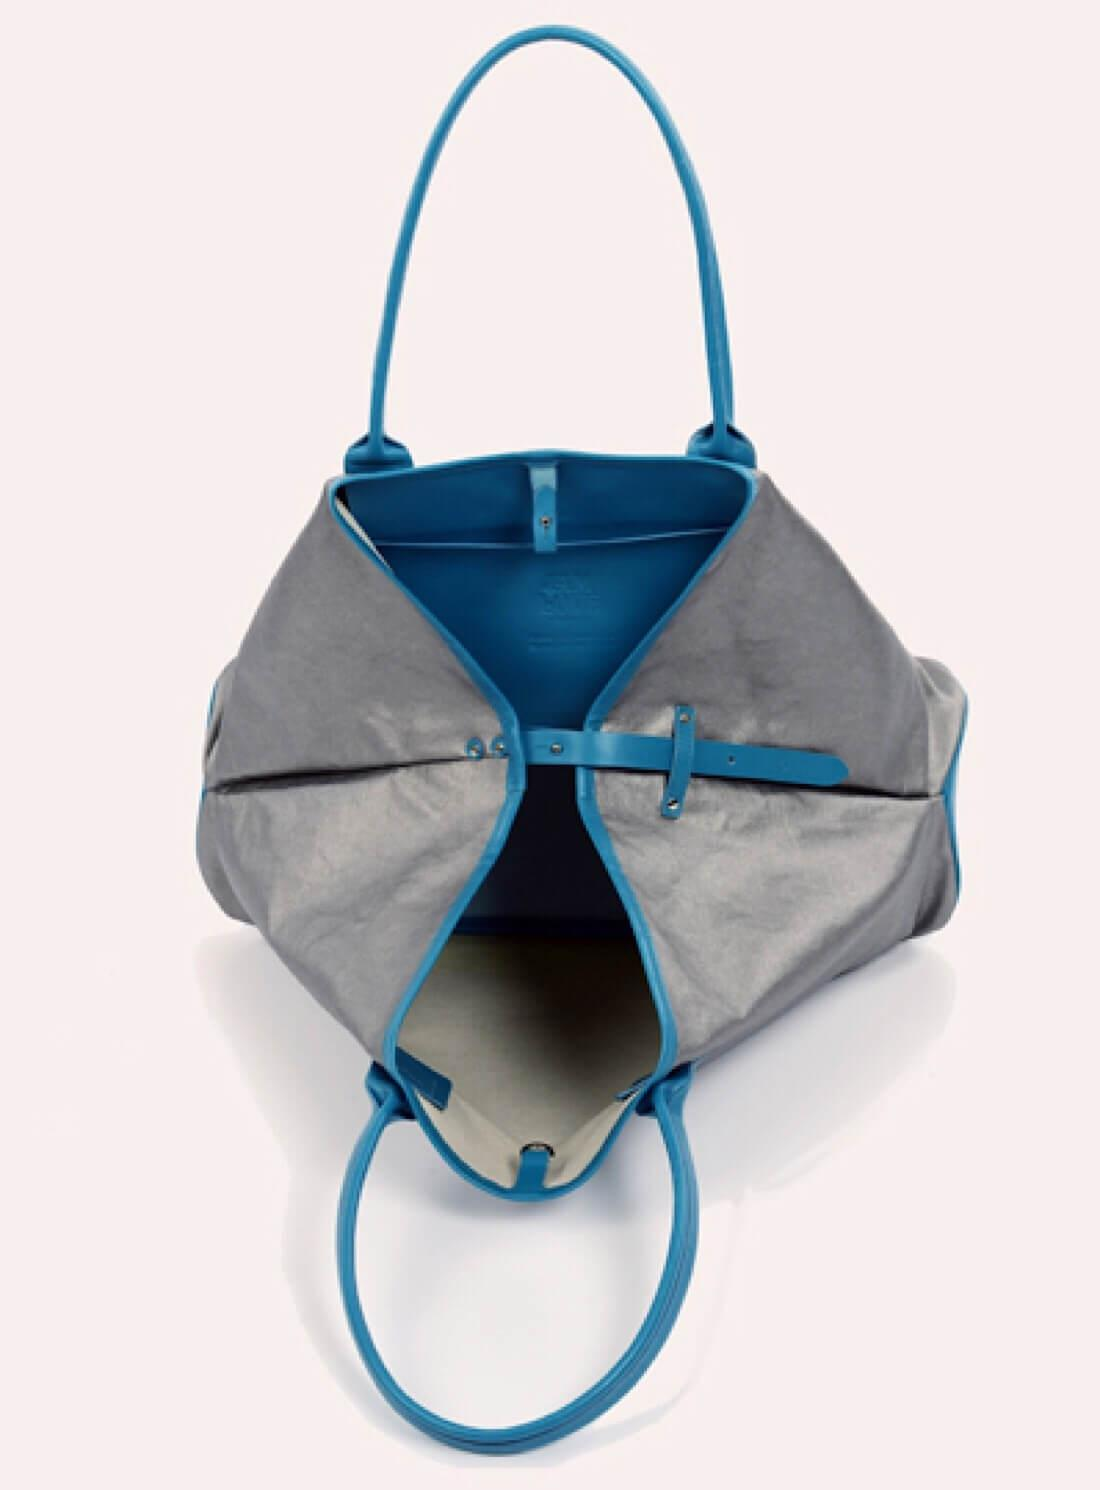 Jam Love London Cotton Large Travel Tote In Sky Blue Silver Metallic